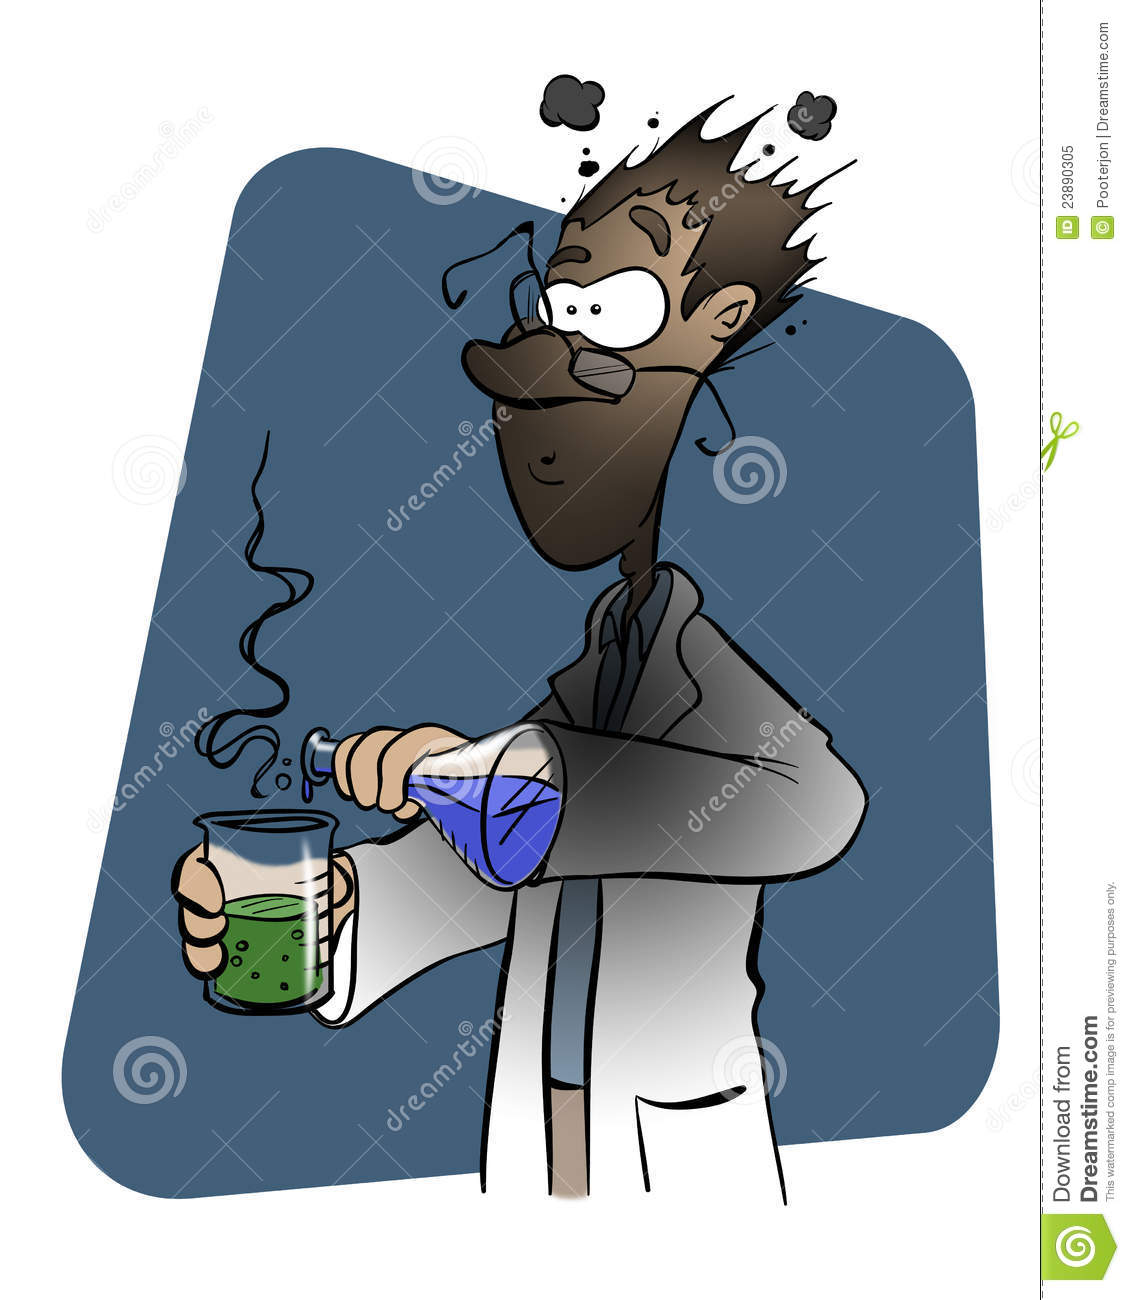 chemistry experiment gone wrong webgiare images of experiment gone wrong royalty stock photo image chemistry experiment gone wrong